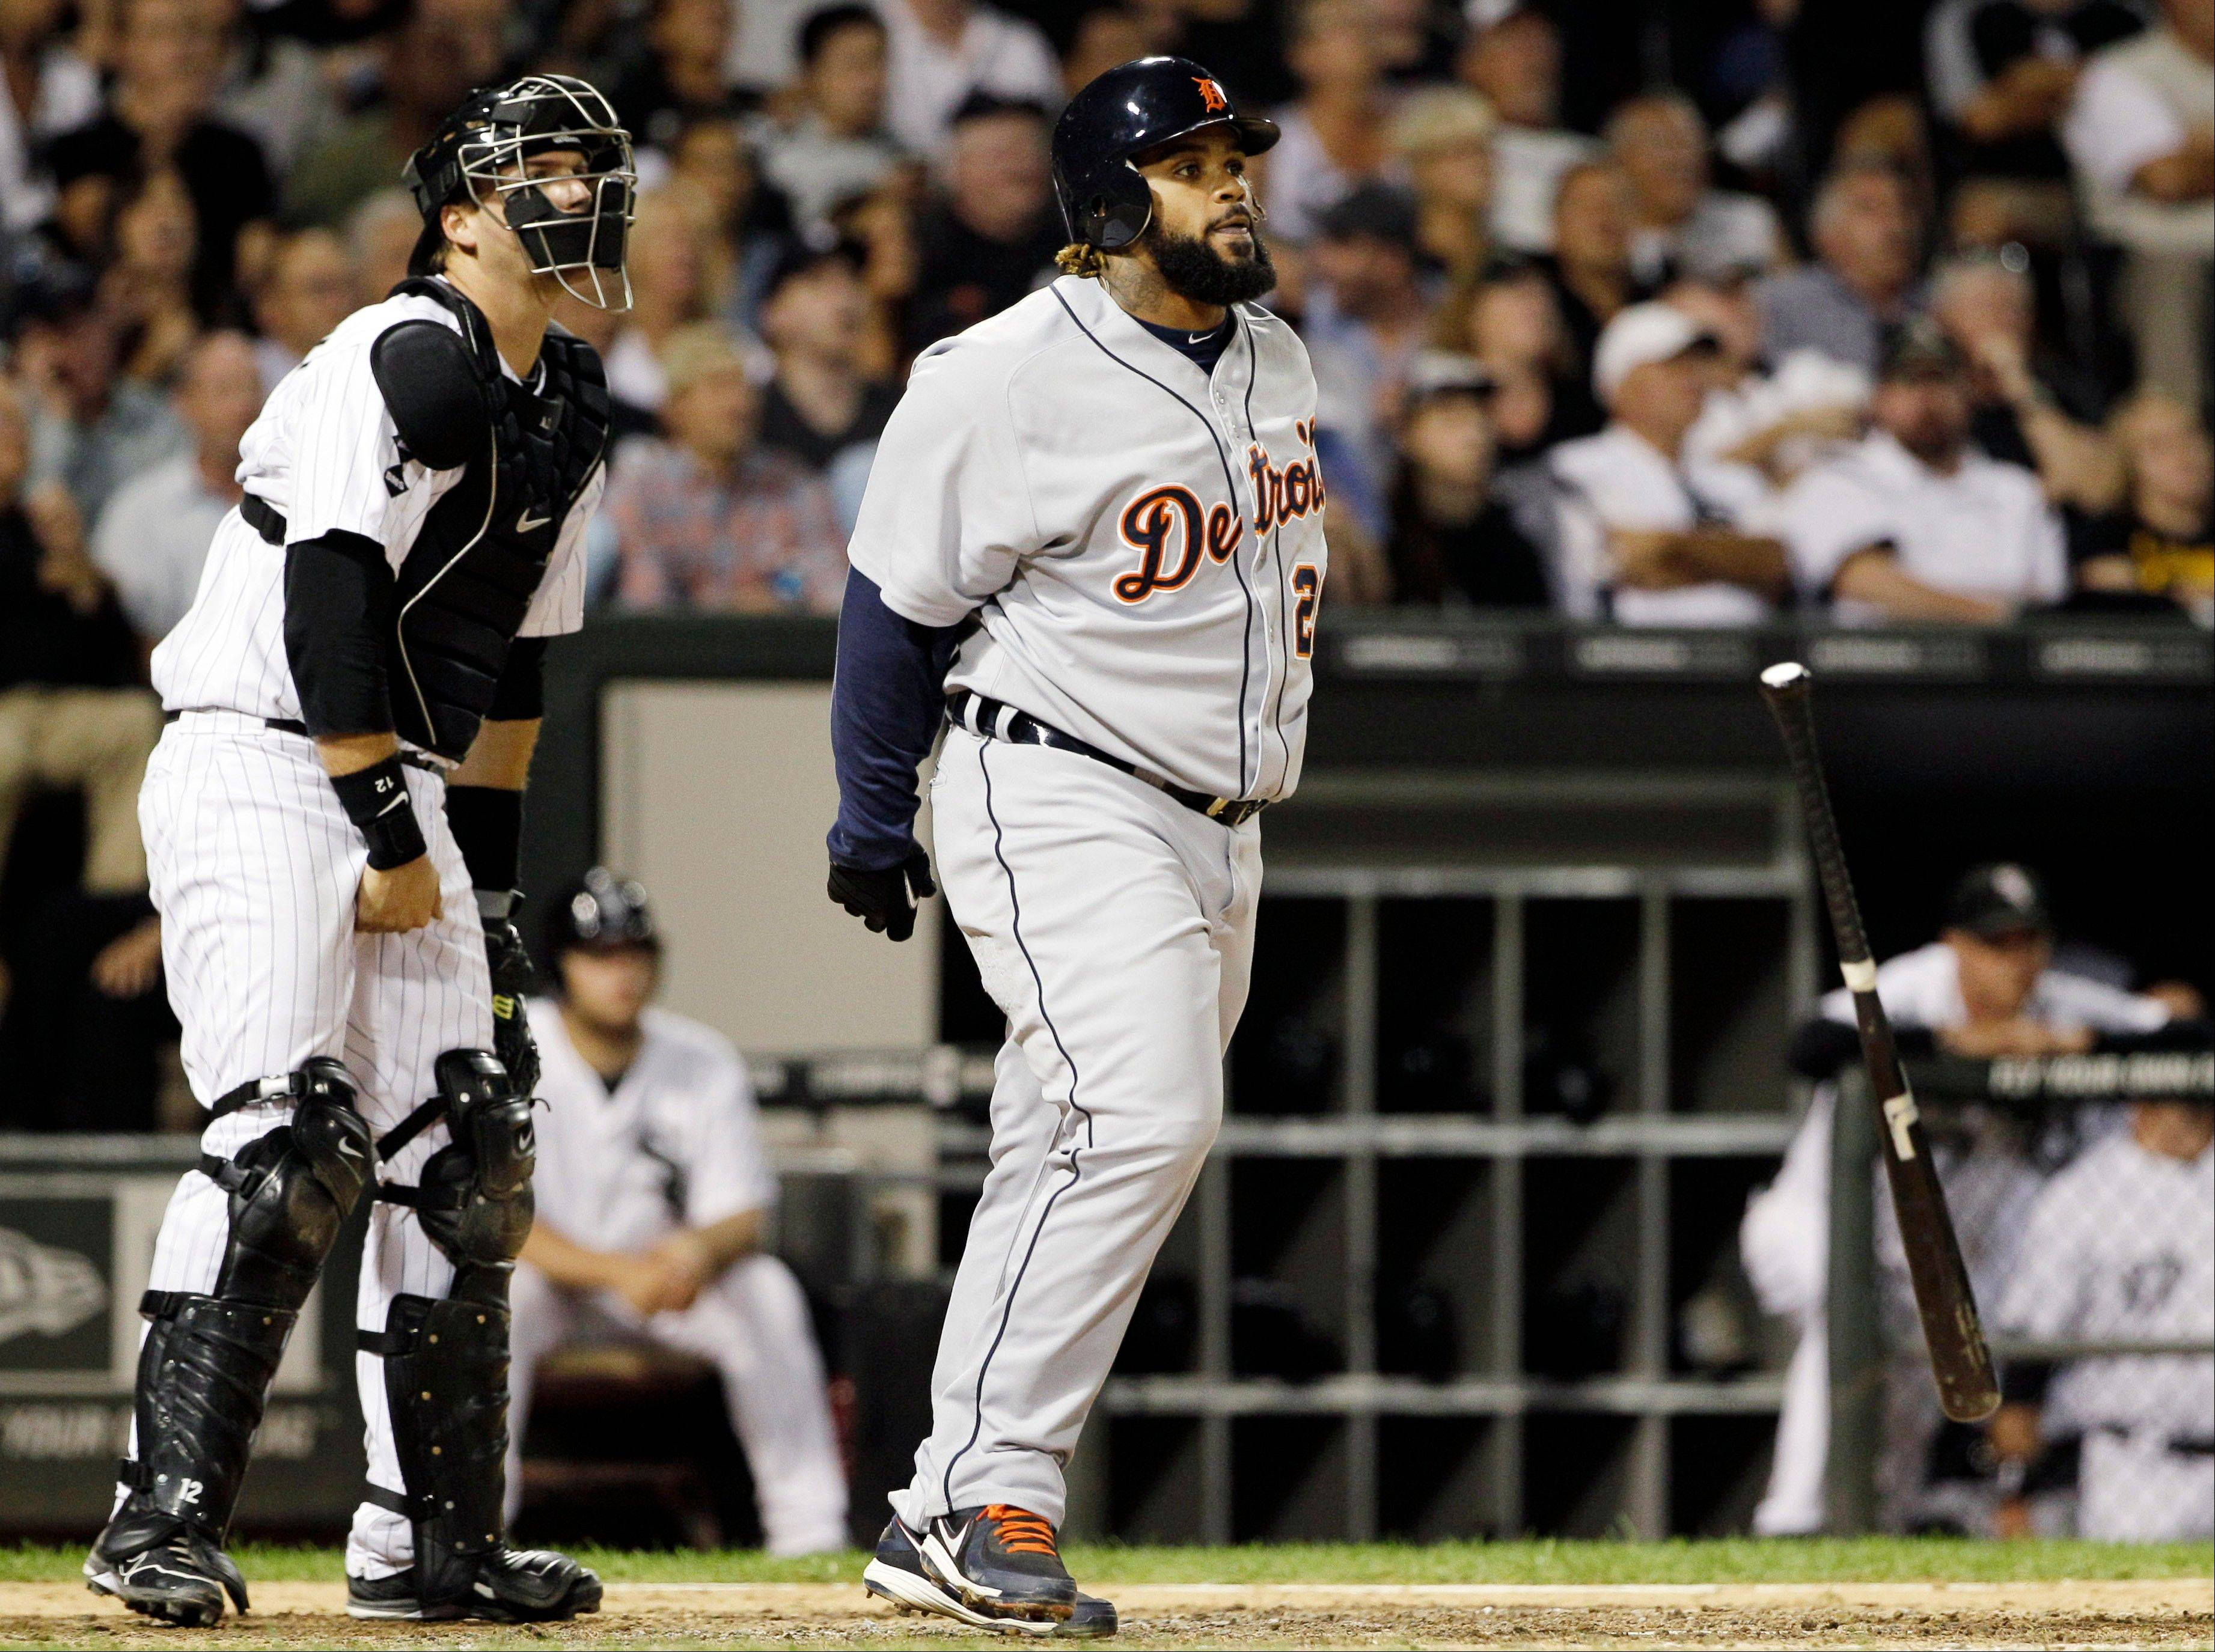 Detroit Tigers first baseman Prince Fielder, right, watches after hitting a three-run home run as White Sox catcher A.J. Pierzynski looks on Wednesday during the seventh inning at U.S. Cellular Field.